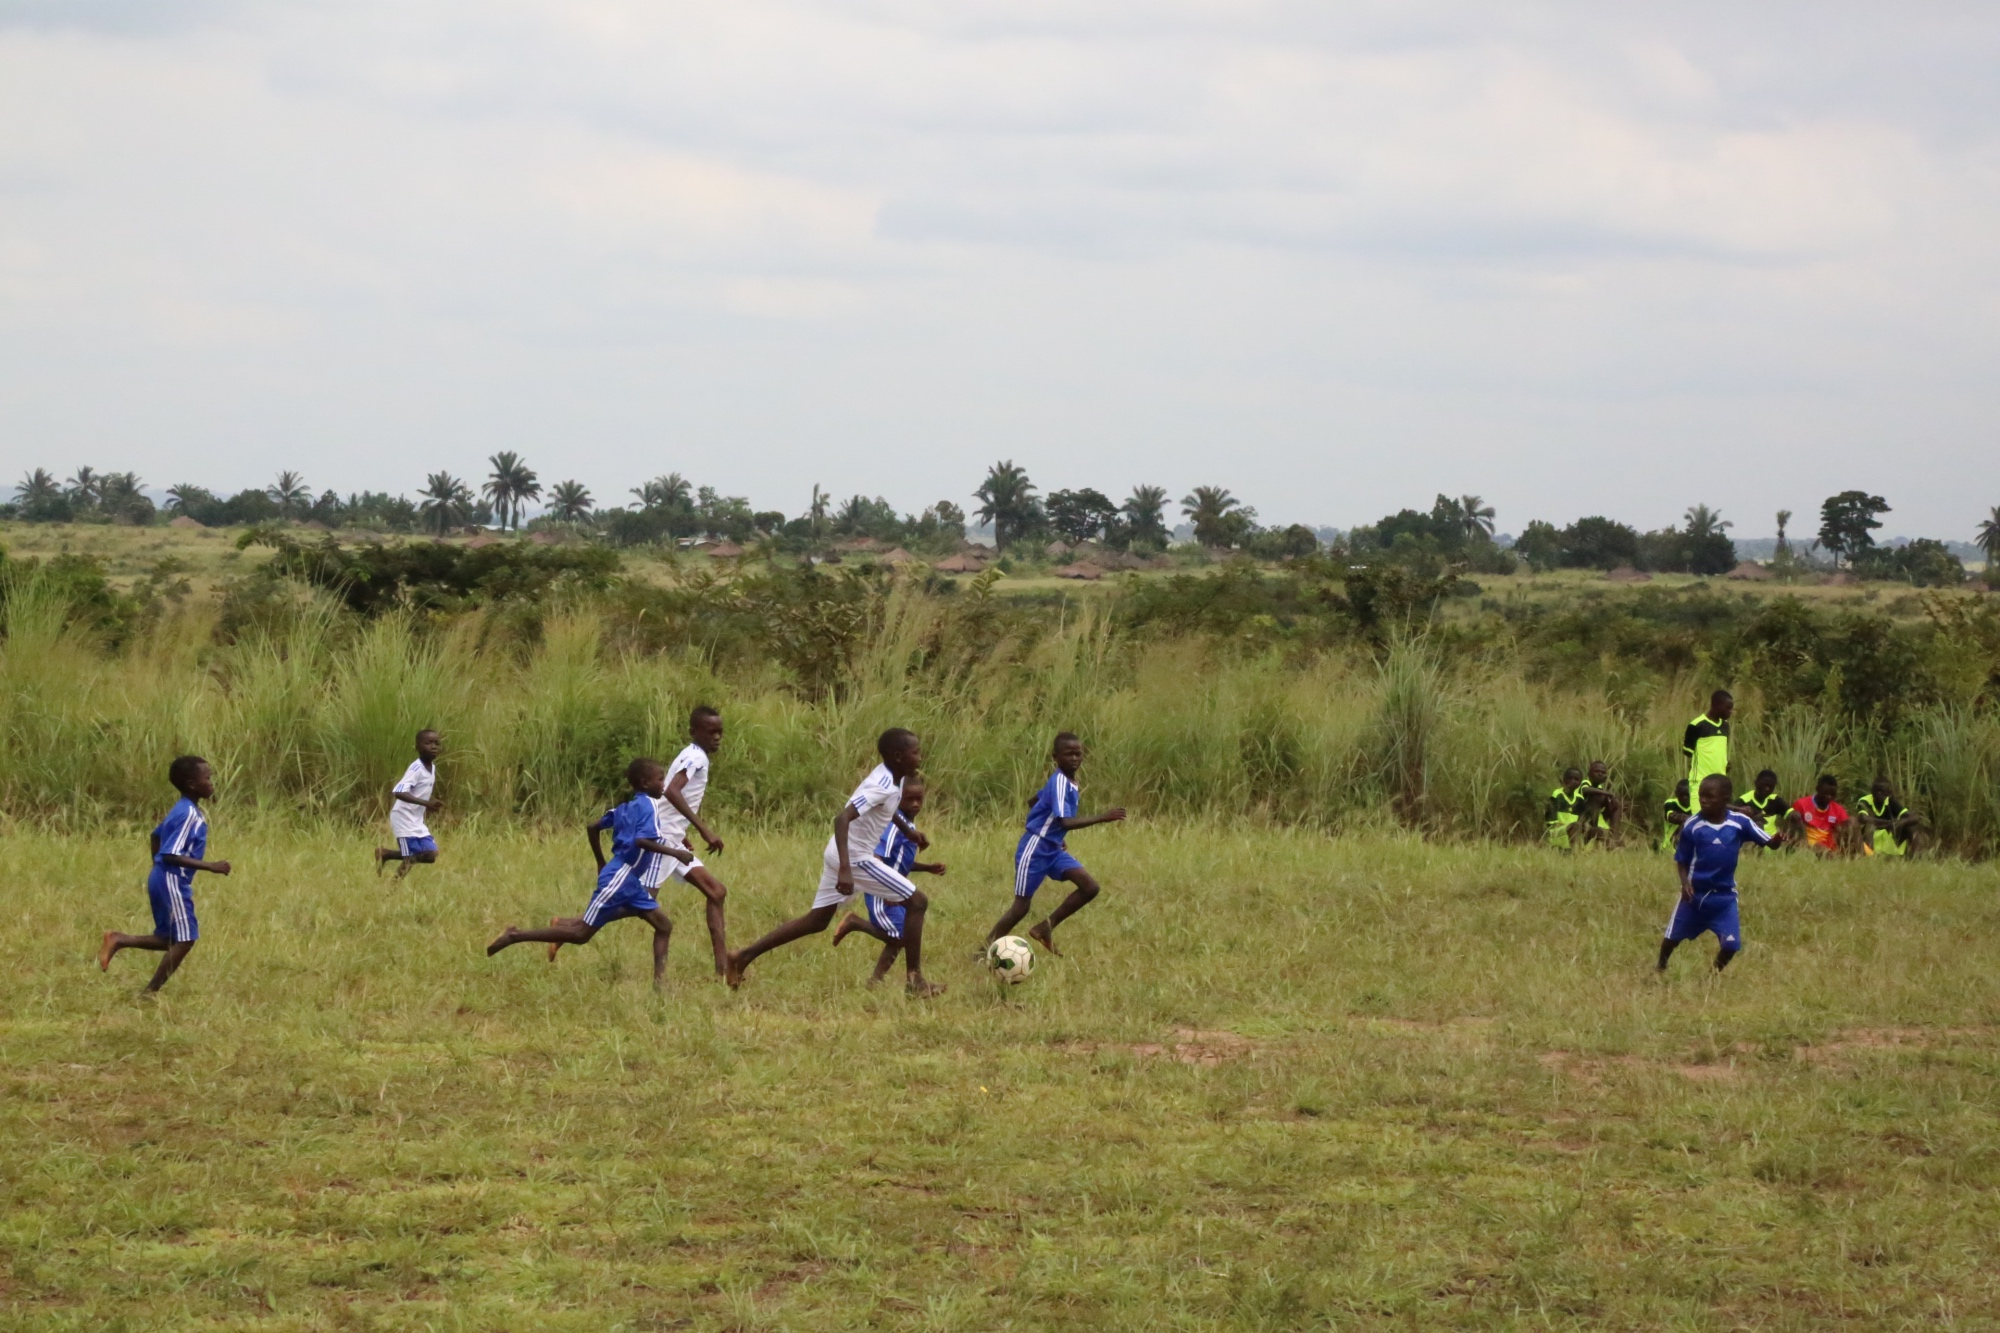 Children in Kamilombe Child Friendly Space playing soccer. These children meet every Saturday morning to learn from Pointen